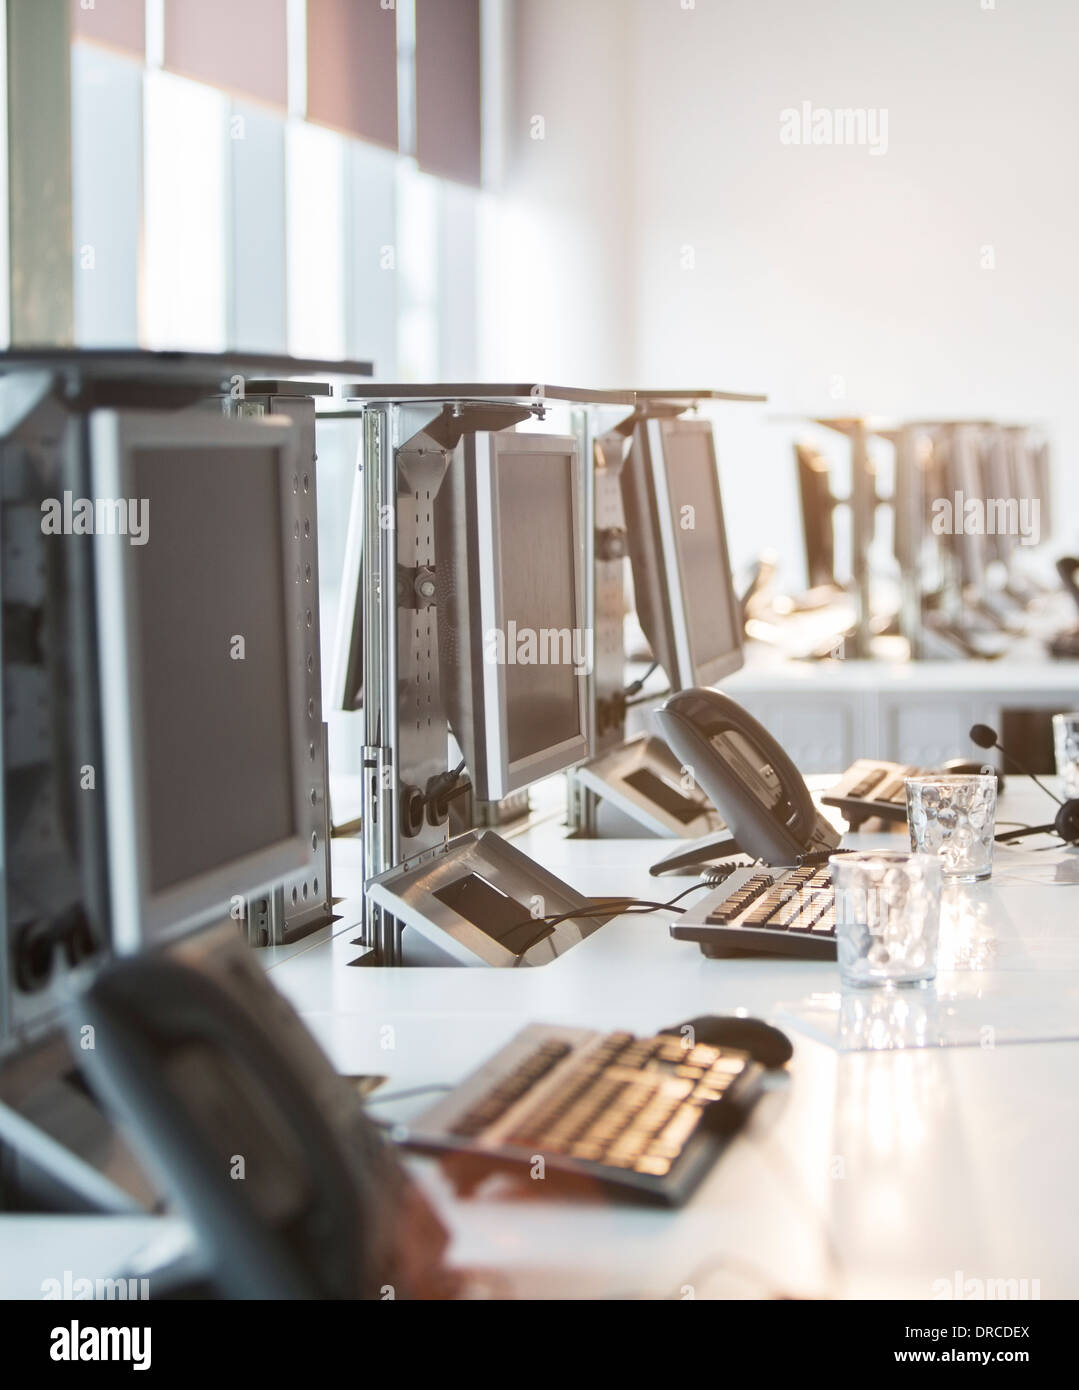 Computers and telephones at desk in office - Stock Image